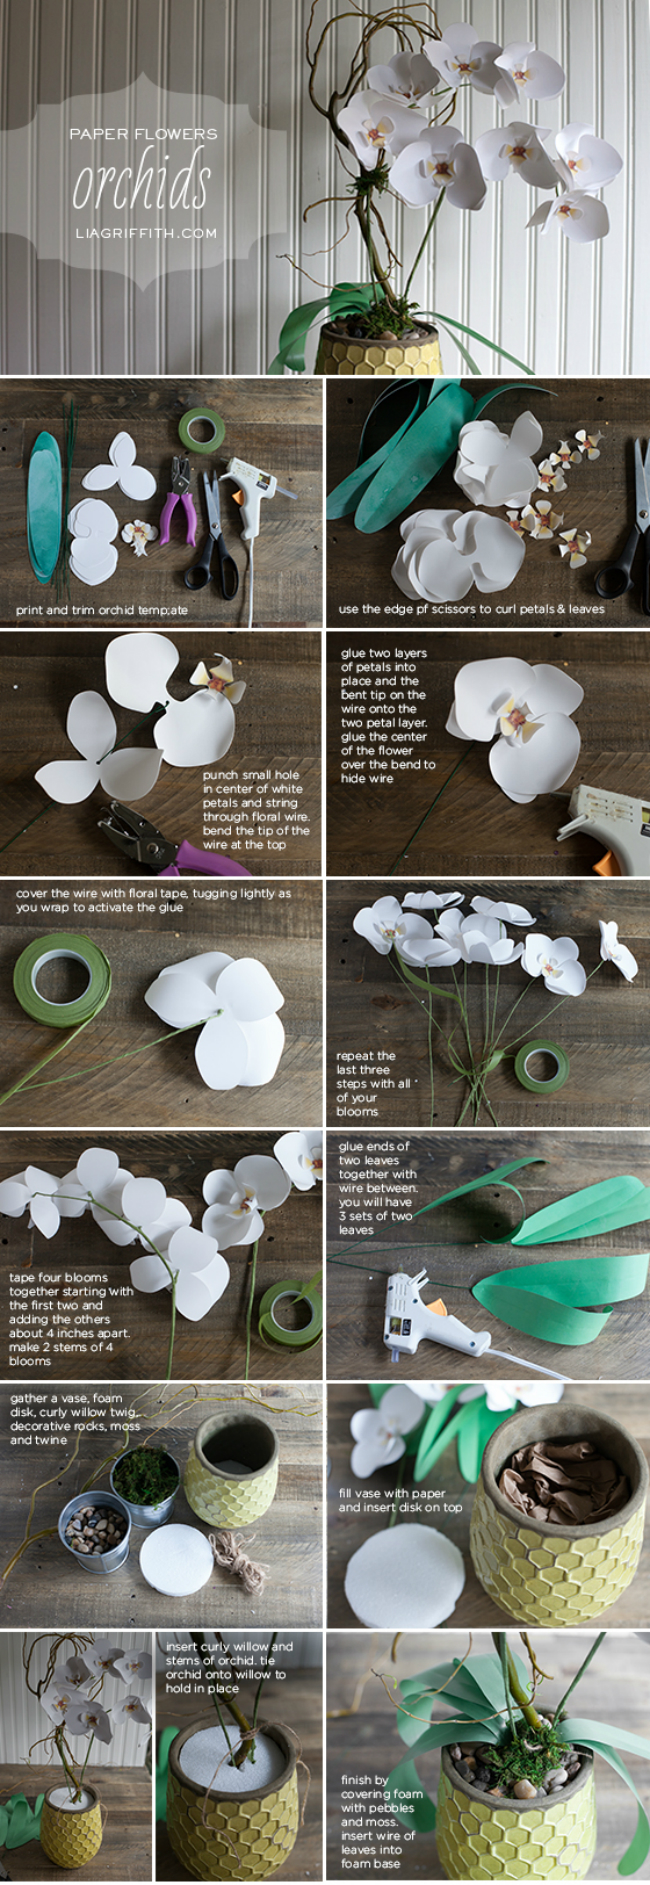 Making of Paper Orchid